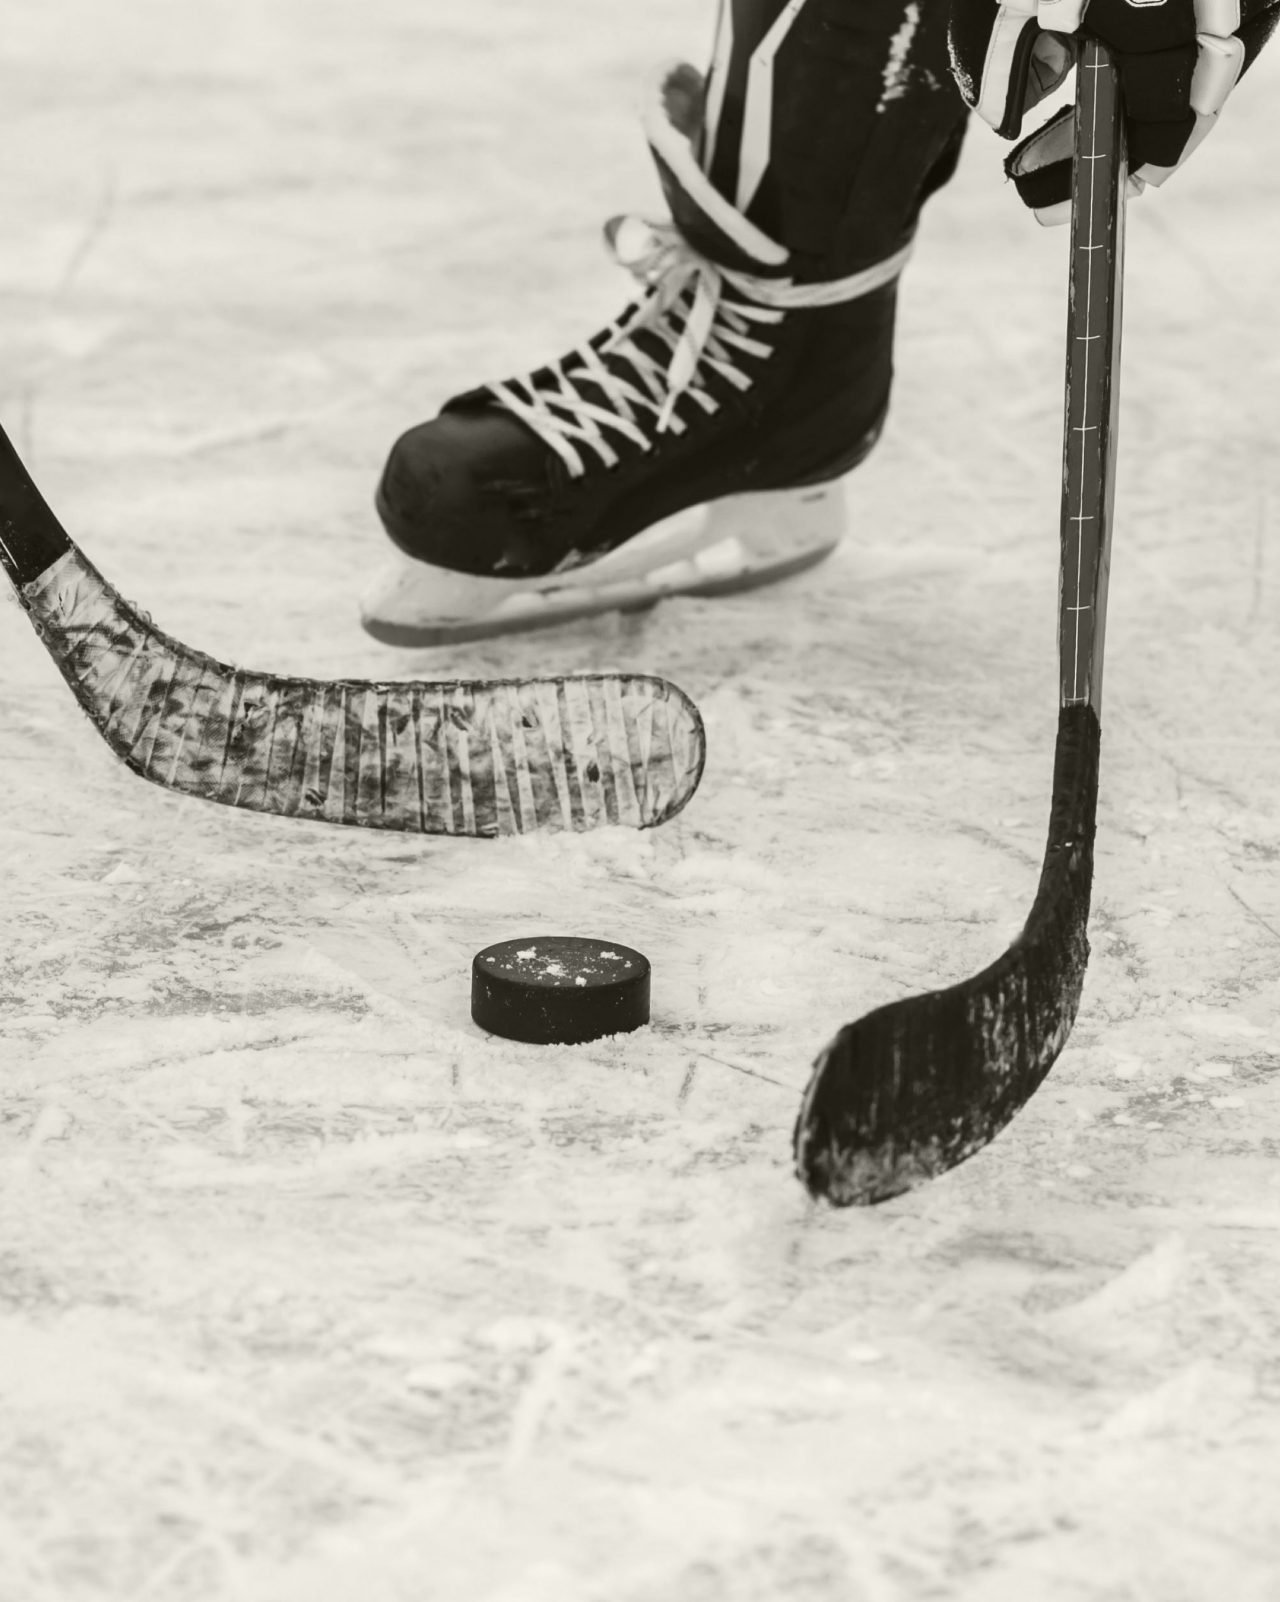 Black and white closeup of two hockey sticks going after hockey puck